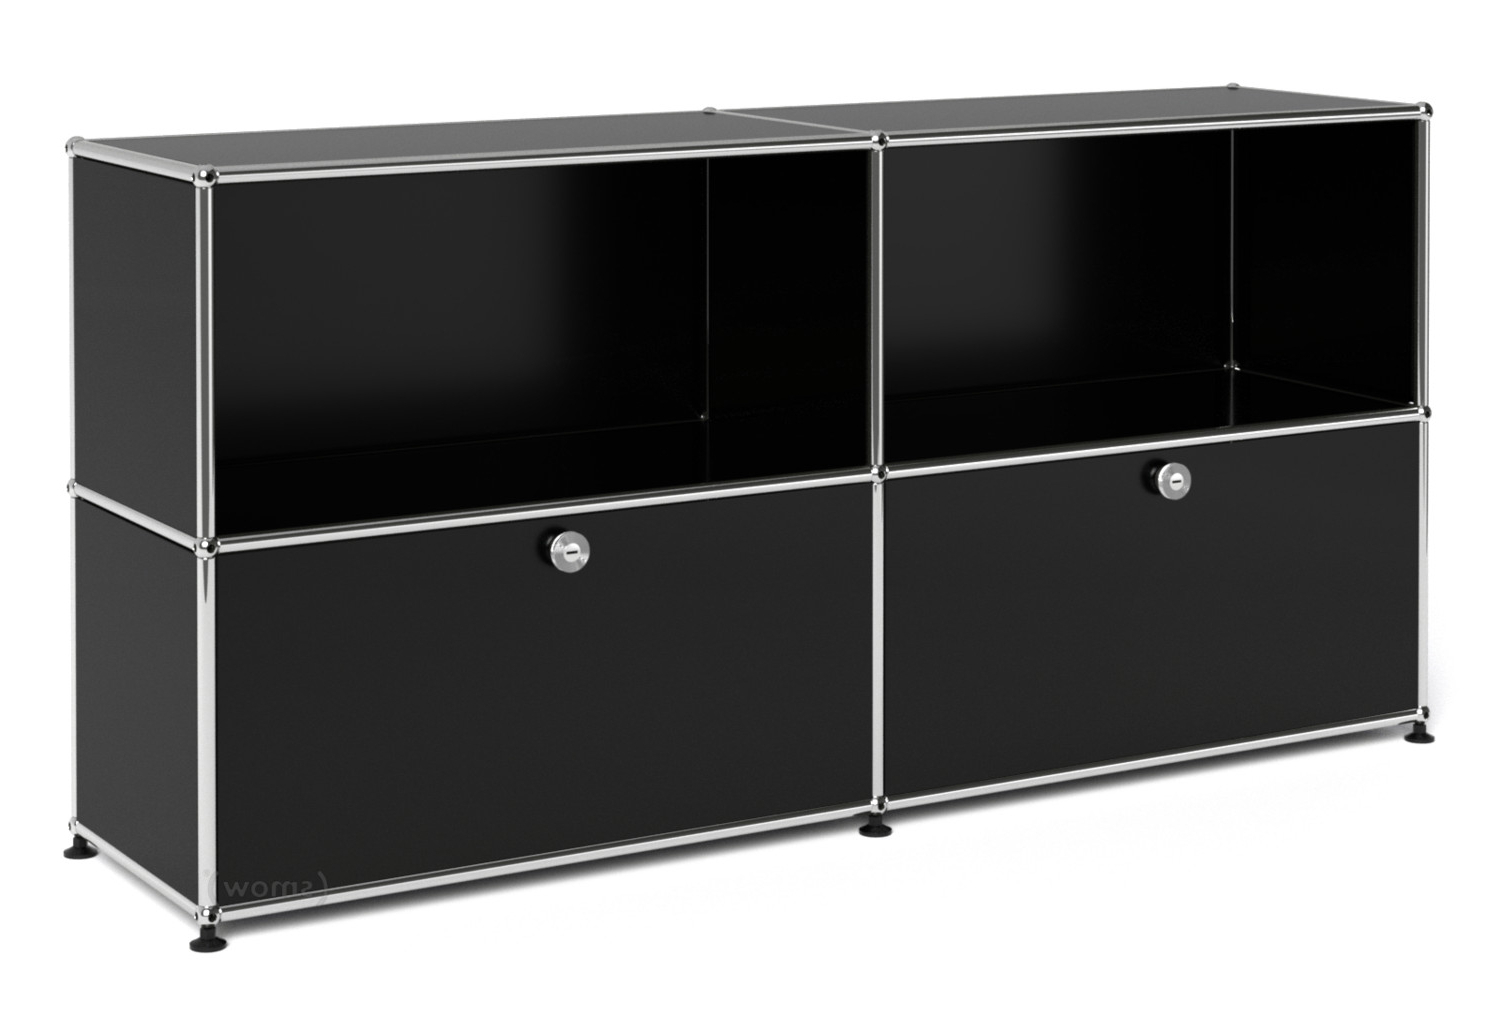 Well Known Usm Haller Sideboard L With 2 Drop Down Doorsfritz Haller & Paul Inside Girard 4 Door Sideboards (View 20 of 20)